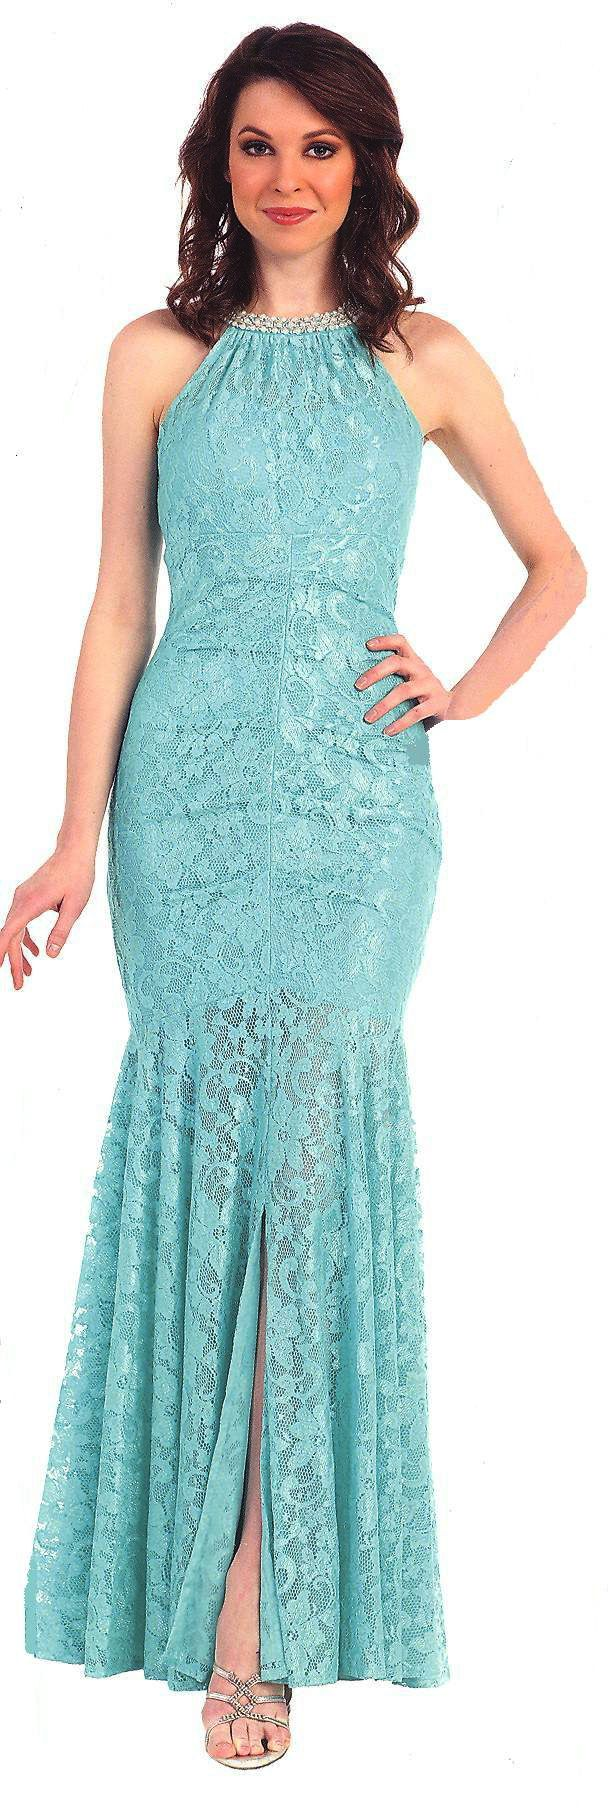 Bridesmaid Dresses Evening Dresses under $100<BR>1395<BR>Jewel neckline long lace mermaid gown featuring a full swirling lace flared skirt with small center slit.